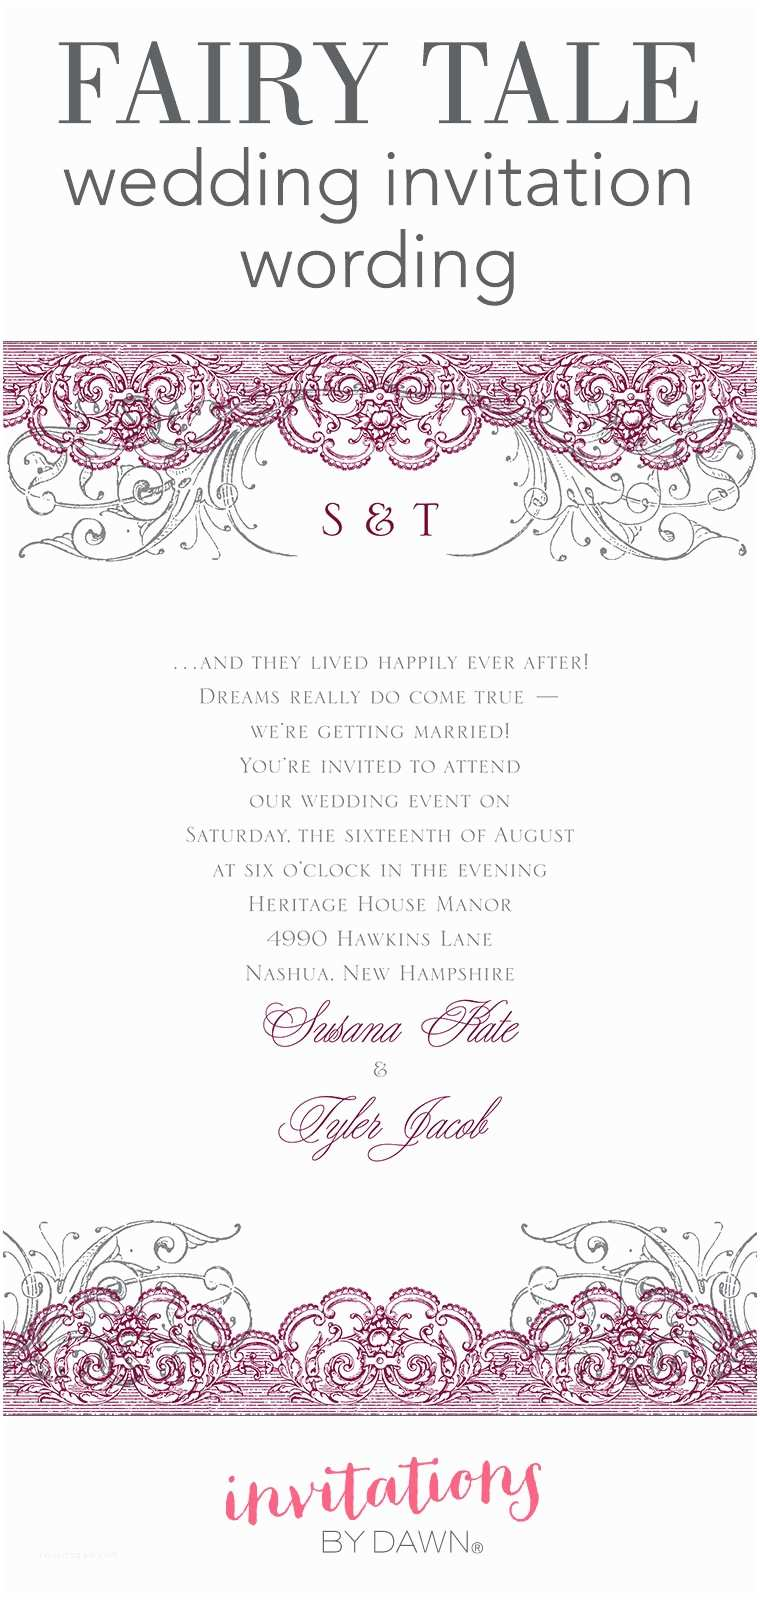 Special Wedding Invitation Wording Create Easy Wedding Invitation Wording Ideas